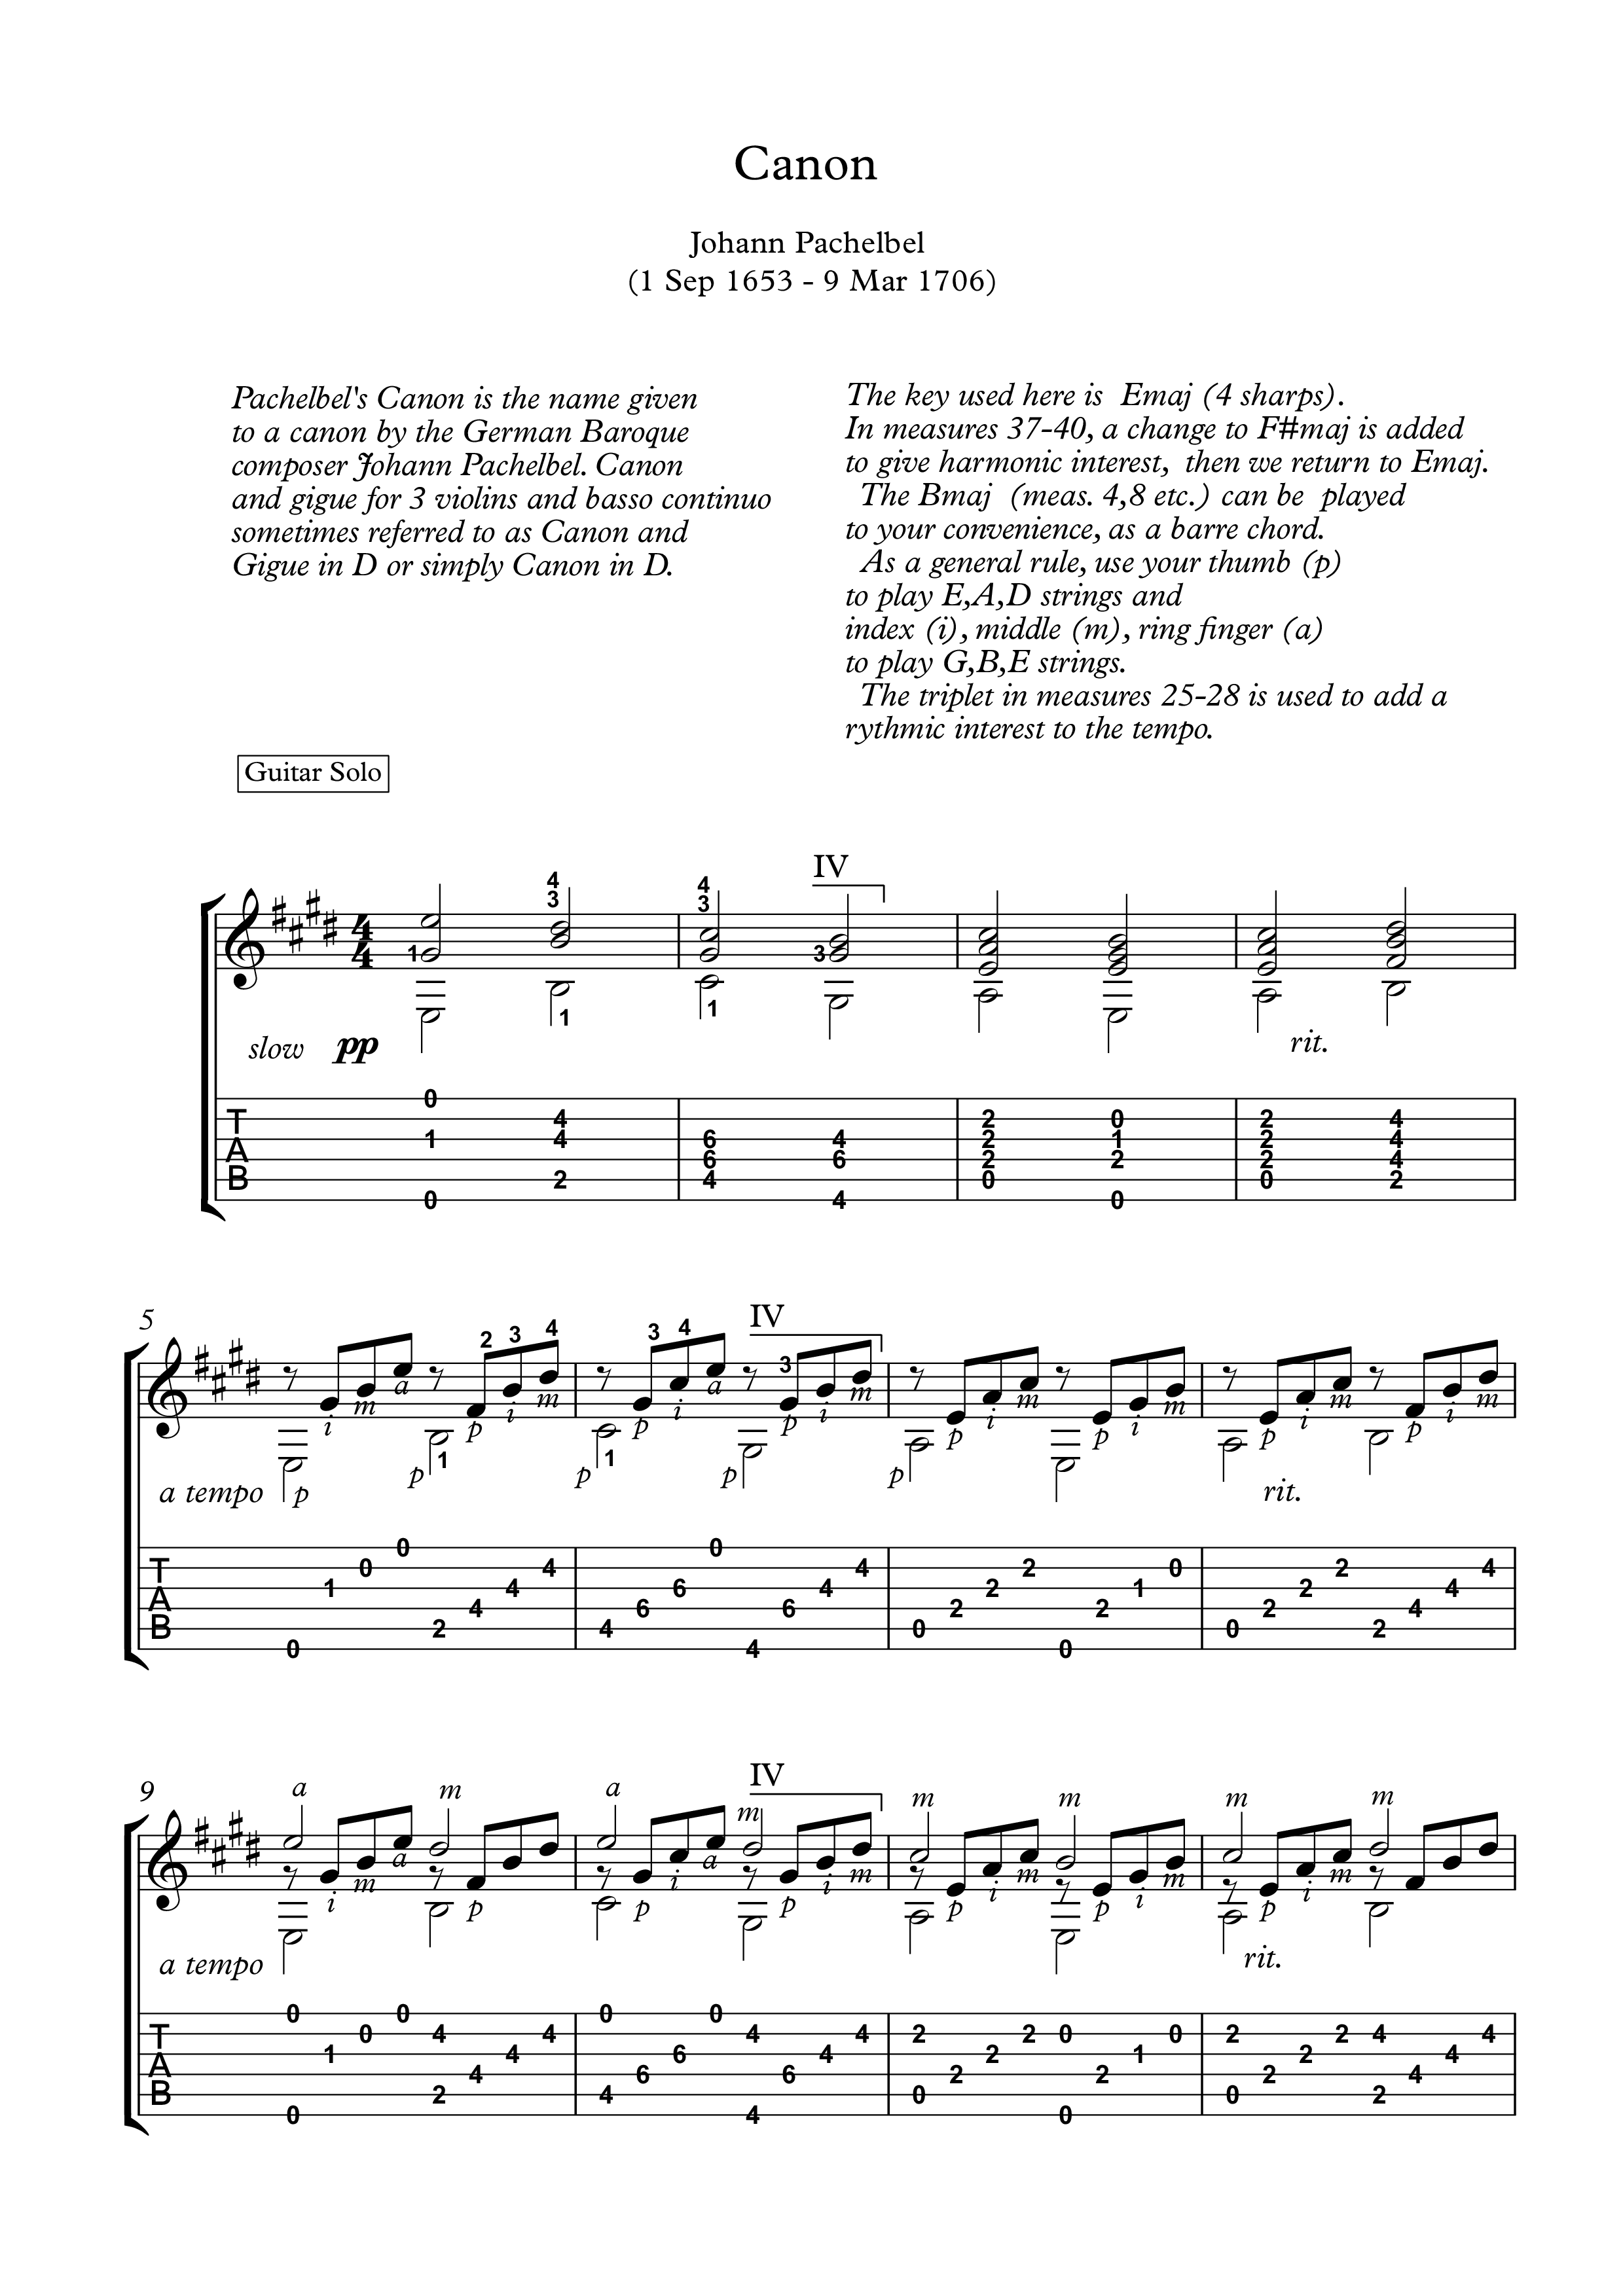 pachelbel canon classical guitar sheet music pachelbel 39 s canon arranged for classical guitar. Black Bedroom Furniture Sets. Home Design Ideas